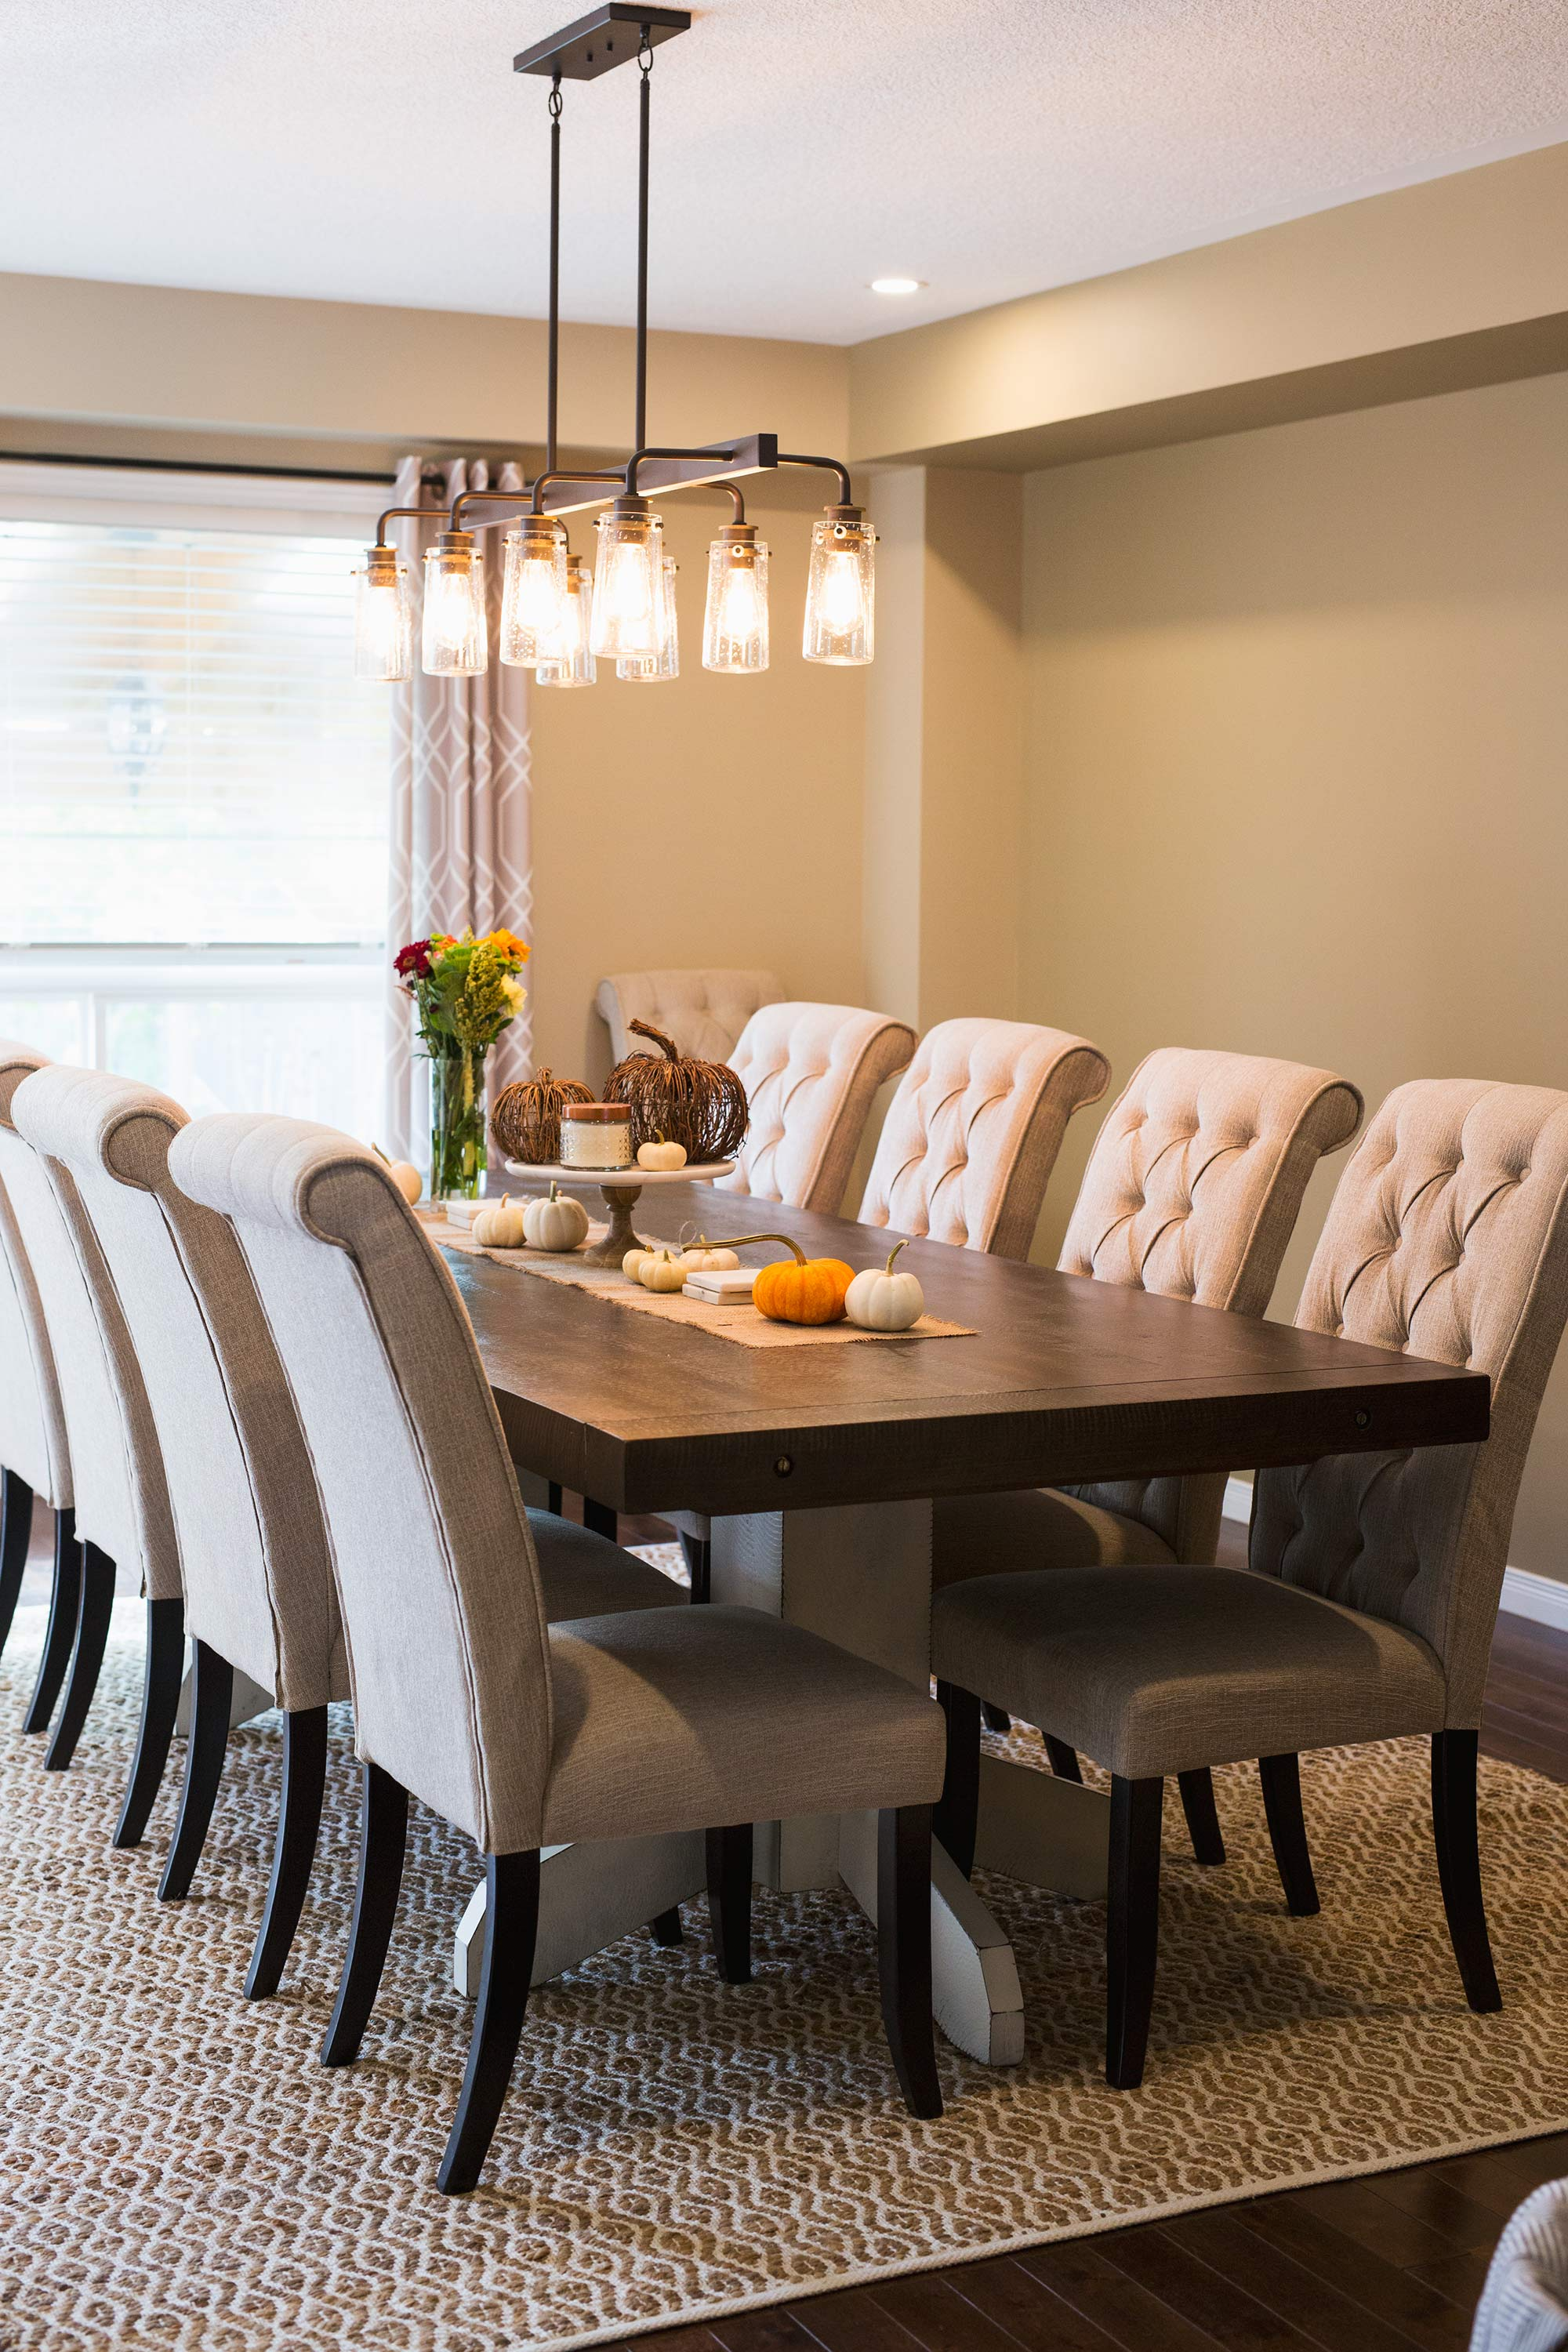 Power Your Reno // Installing a Dining Room Light with an LEC